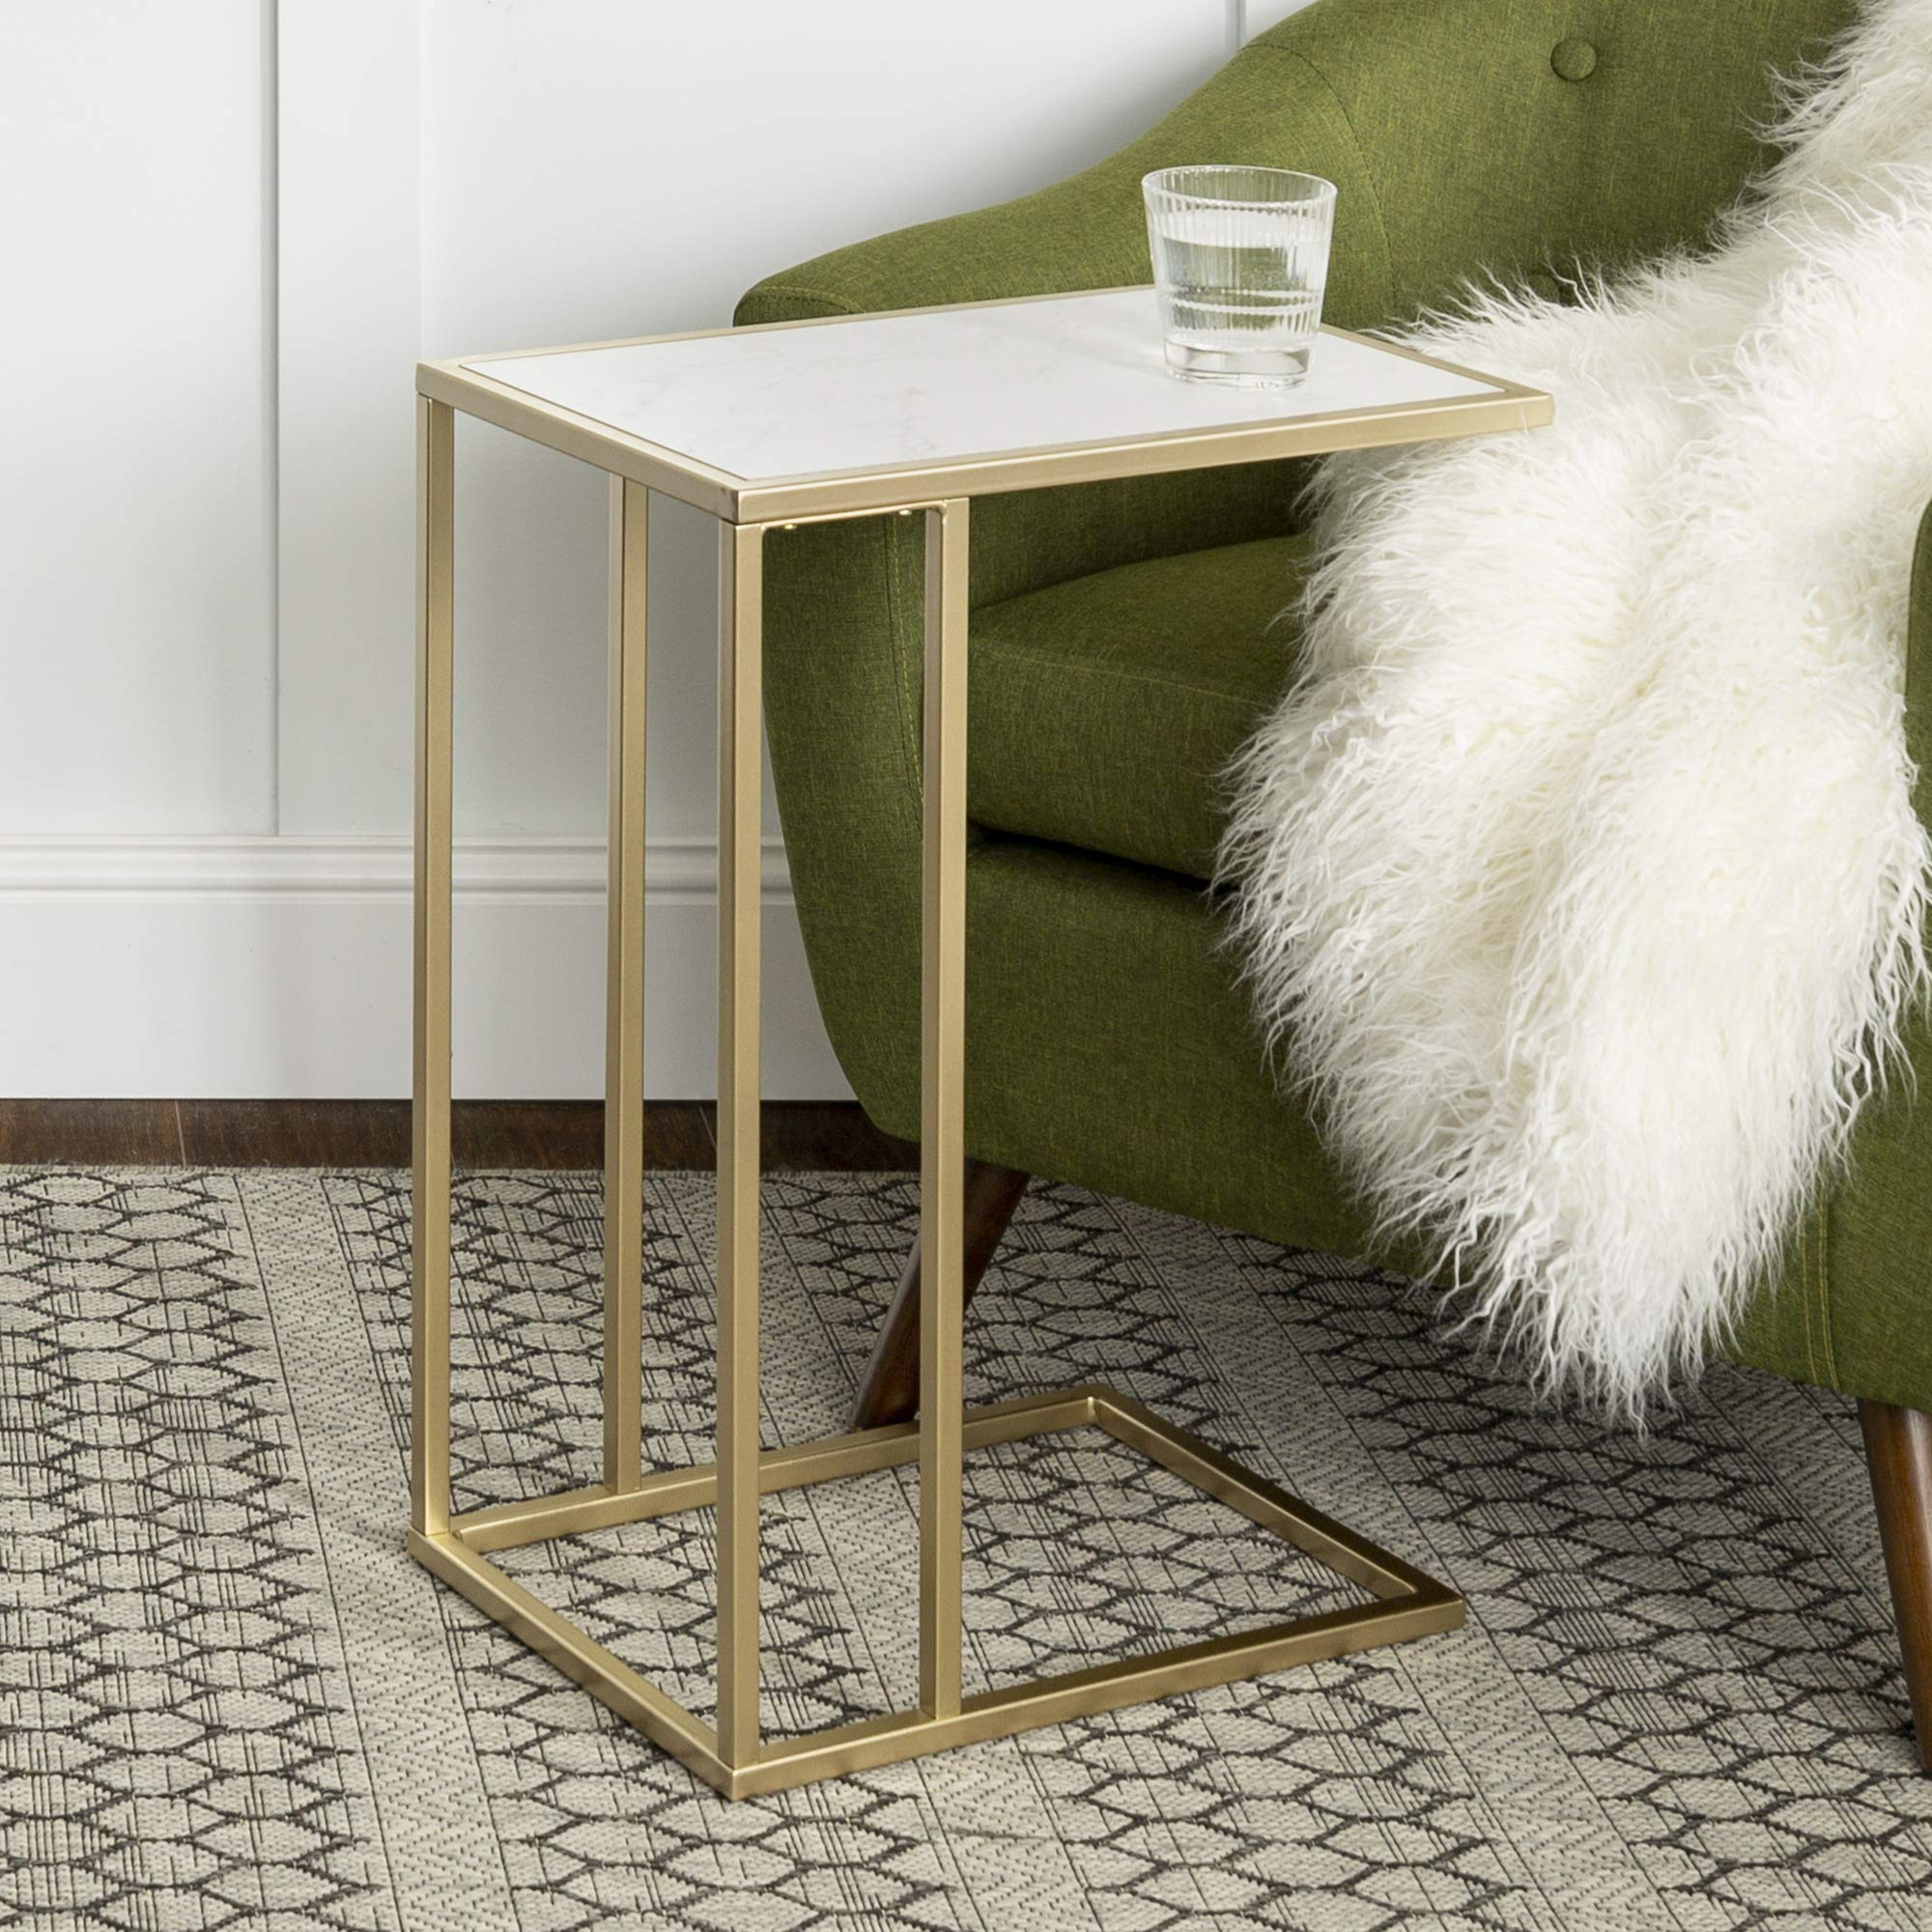 WE Furniture Modern Side End Accent C Table Living Room, 20 Inch, White Marble, Gold by WE Furniture